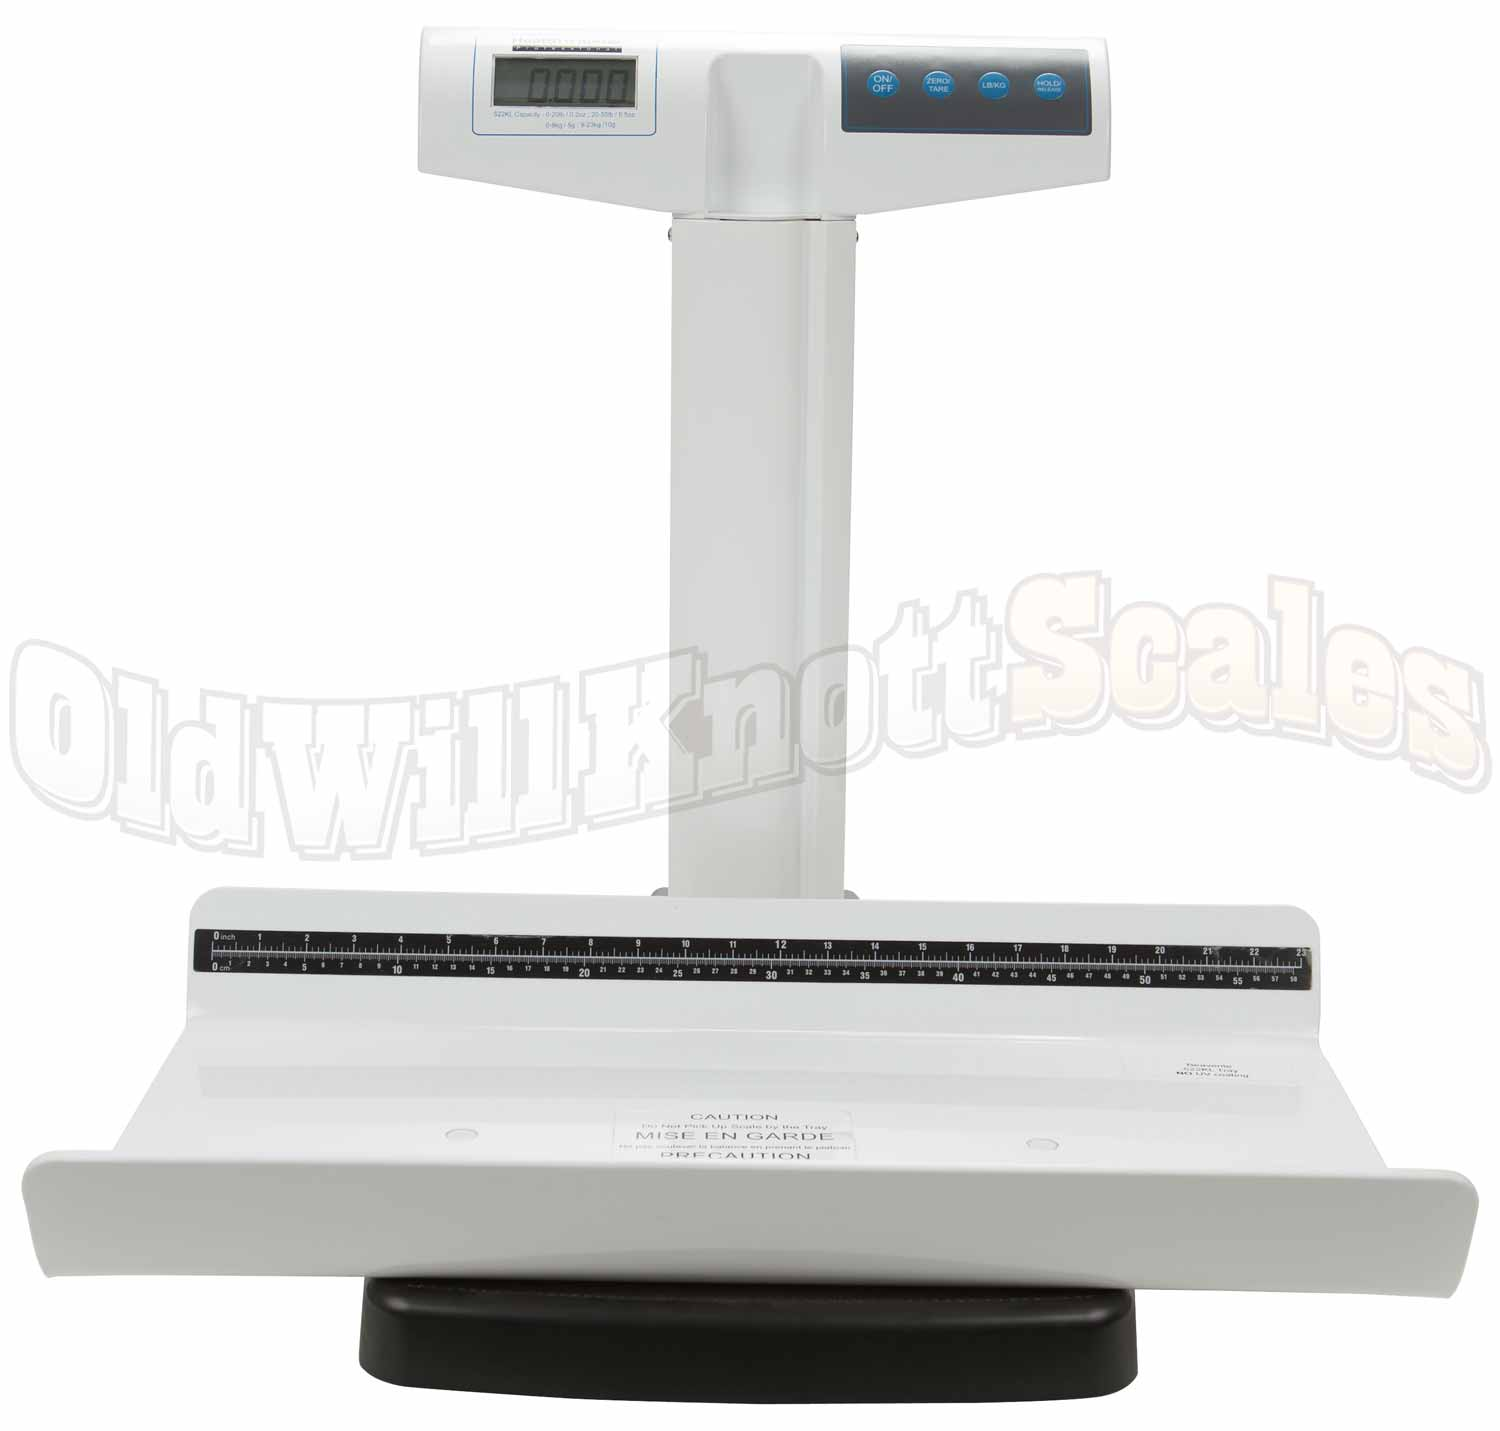 Healthometer KL digital baby scale offers 44 pounds of weighing capacity and ounce readability. KL infant scale feature motion sensing weighing technology that locks in the baby's weight quickly, so even extremely active babies can still be weighed abegsuble.cfry: Veterinary Scales.